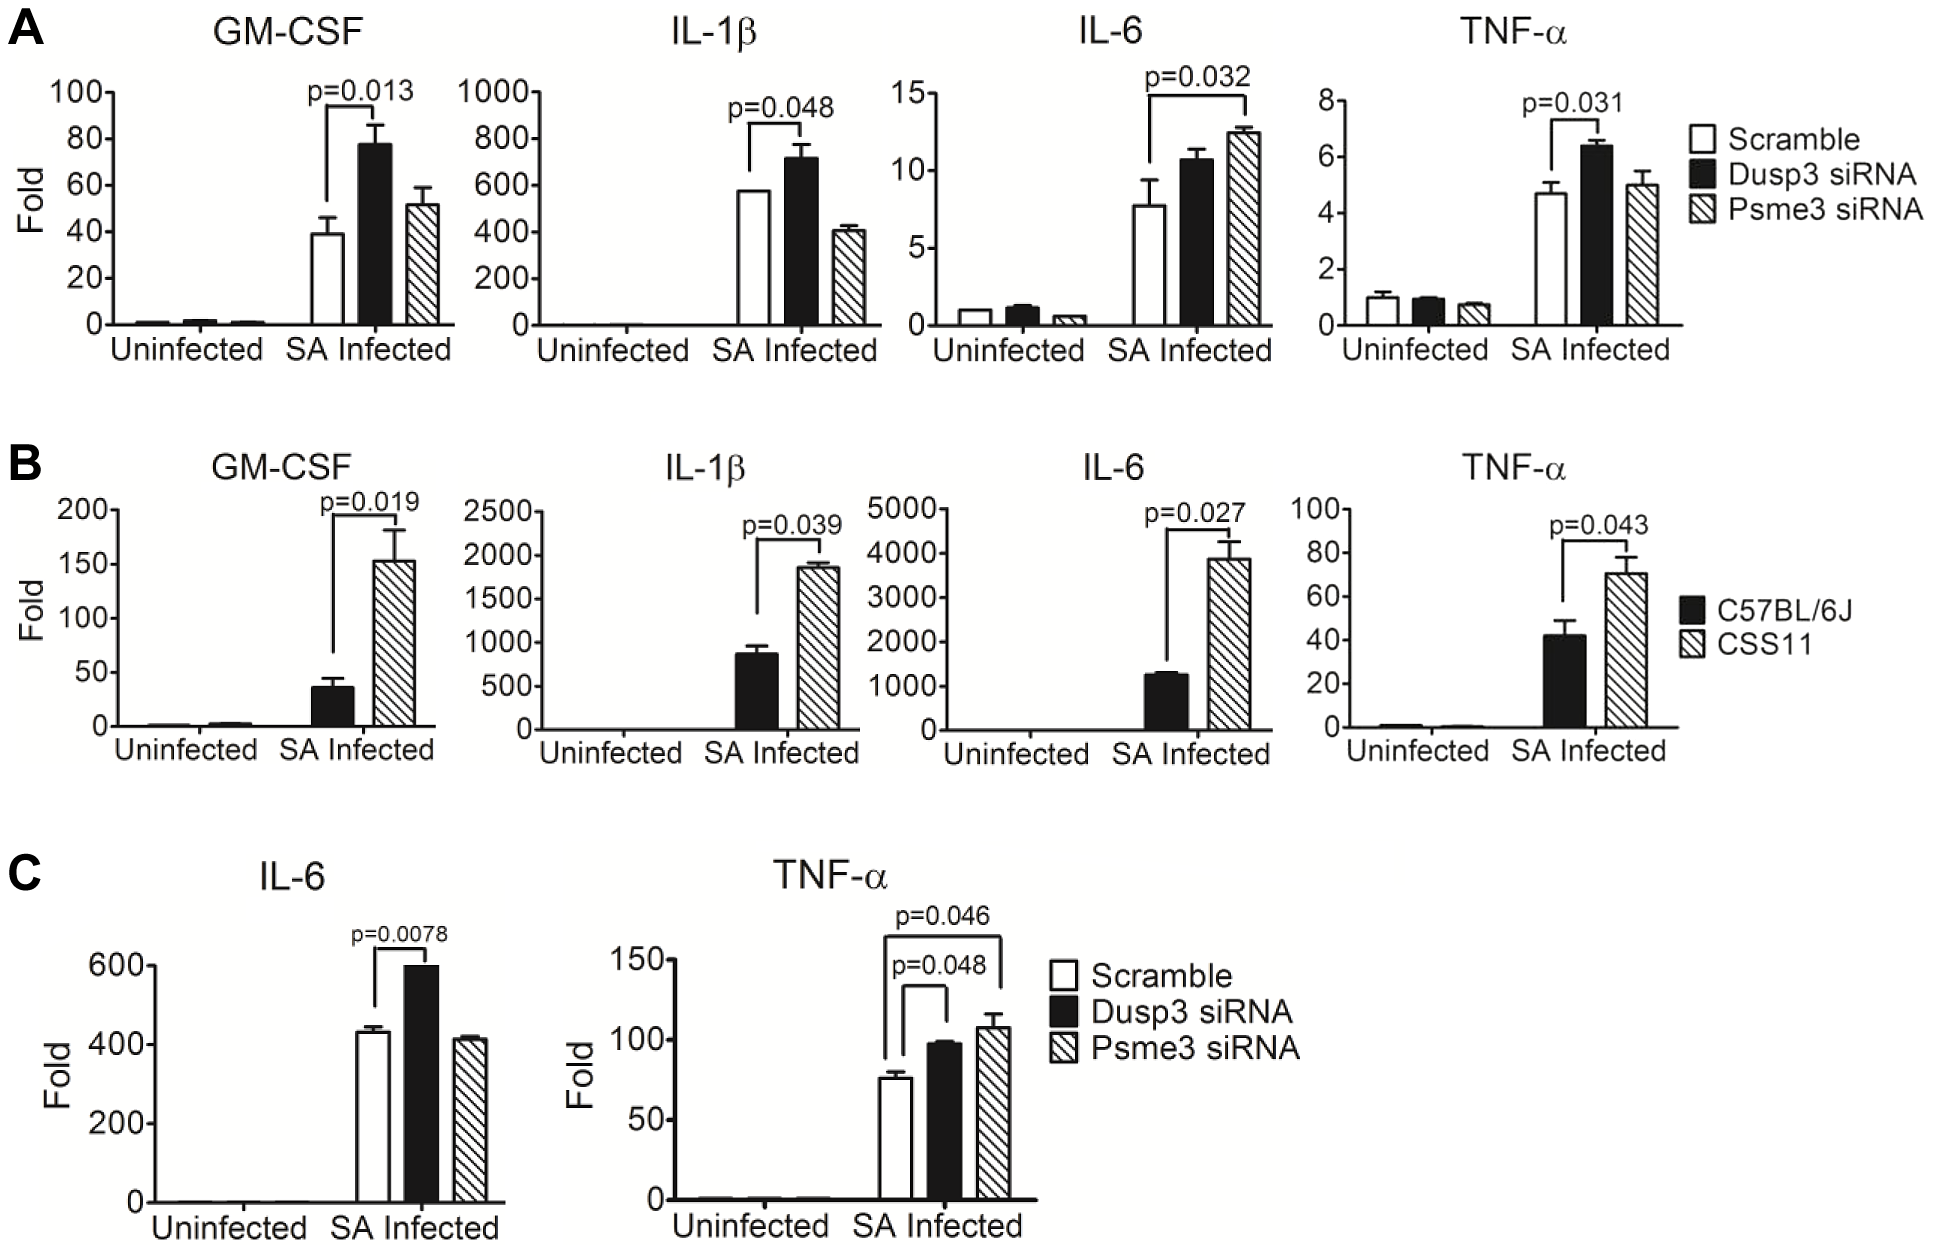 Quantitative-PCR confirmed elevation of cytokine production in macrophages transfected by <i>Dusp3</i> and <i>Psme3</i> siRNA or BMDMs from CSS11(GM-CSF, IL-1β, IL-6, and TNF-α).